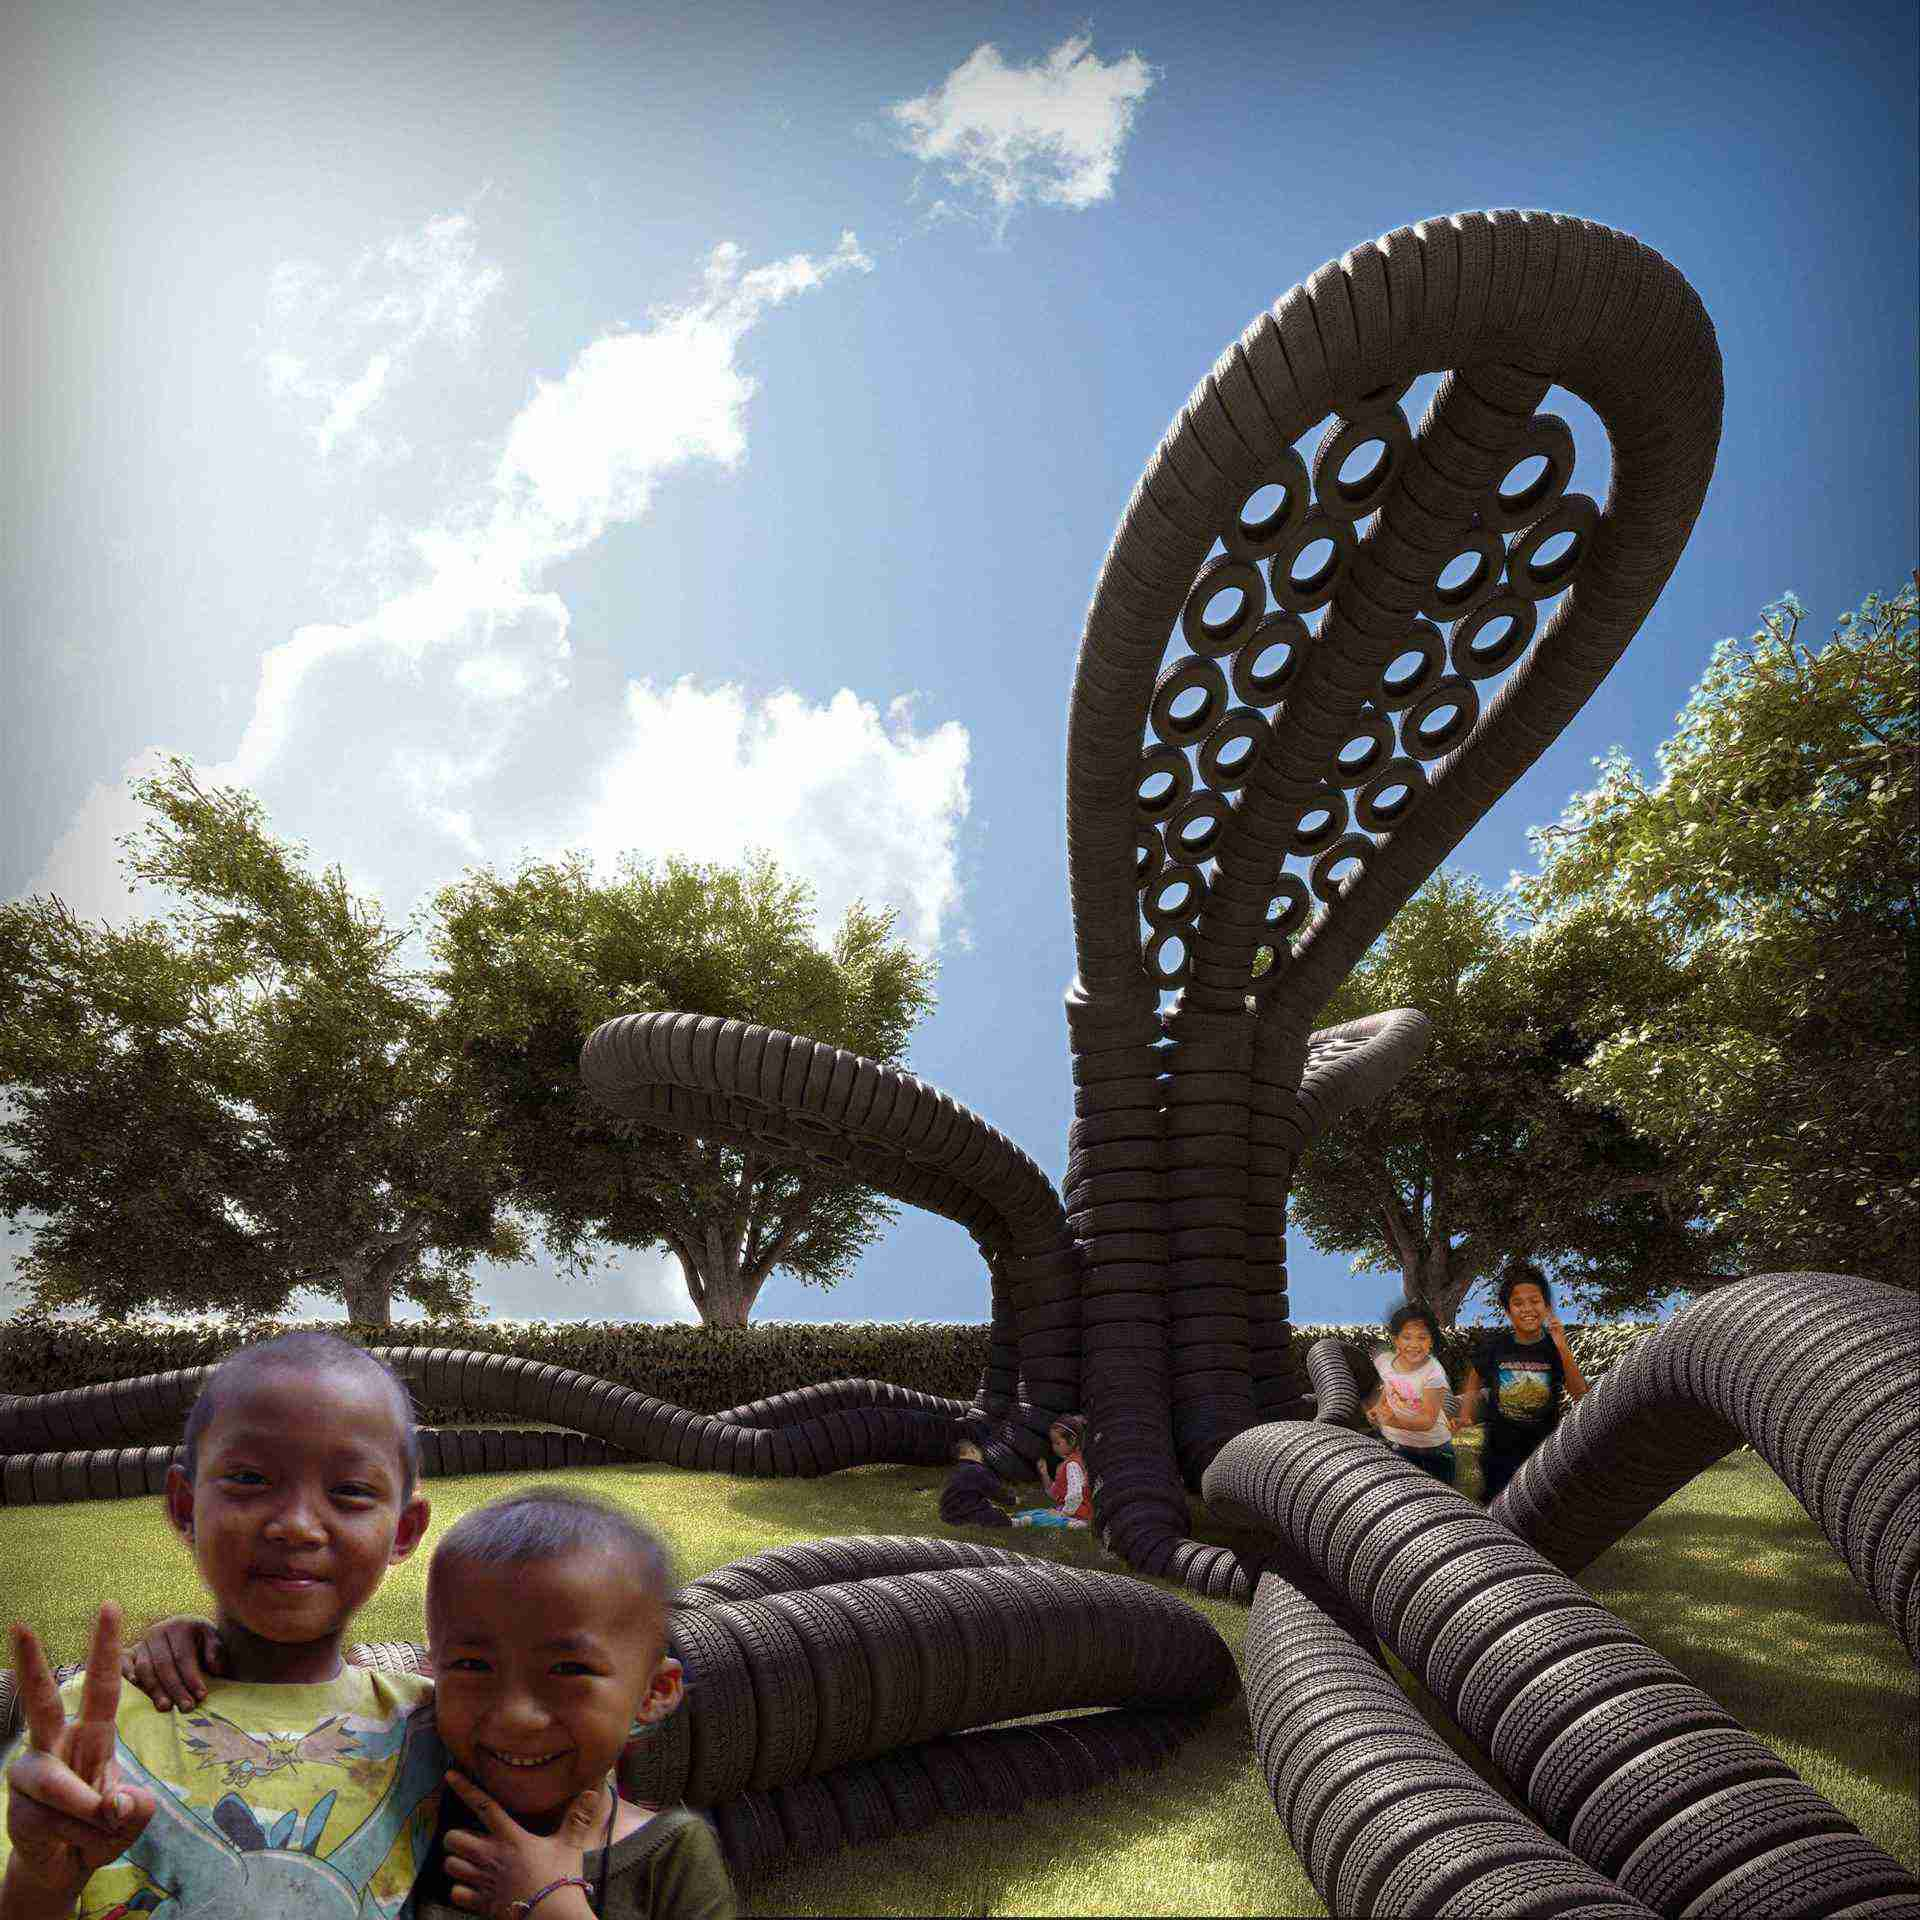 Rubbertree, play area for kids, used car tyres